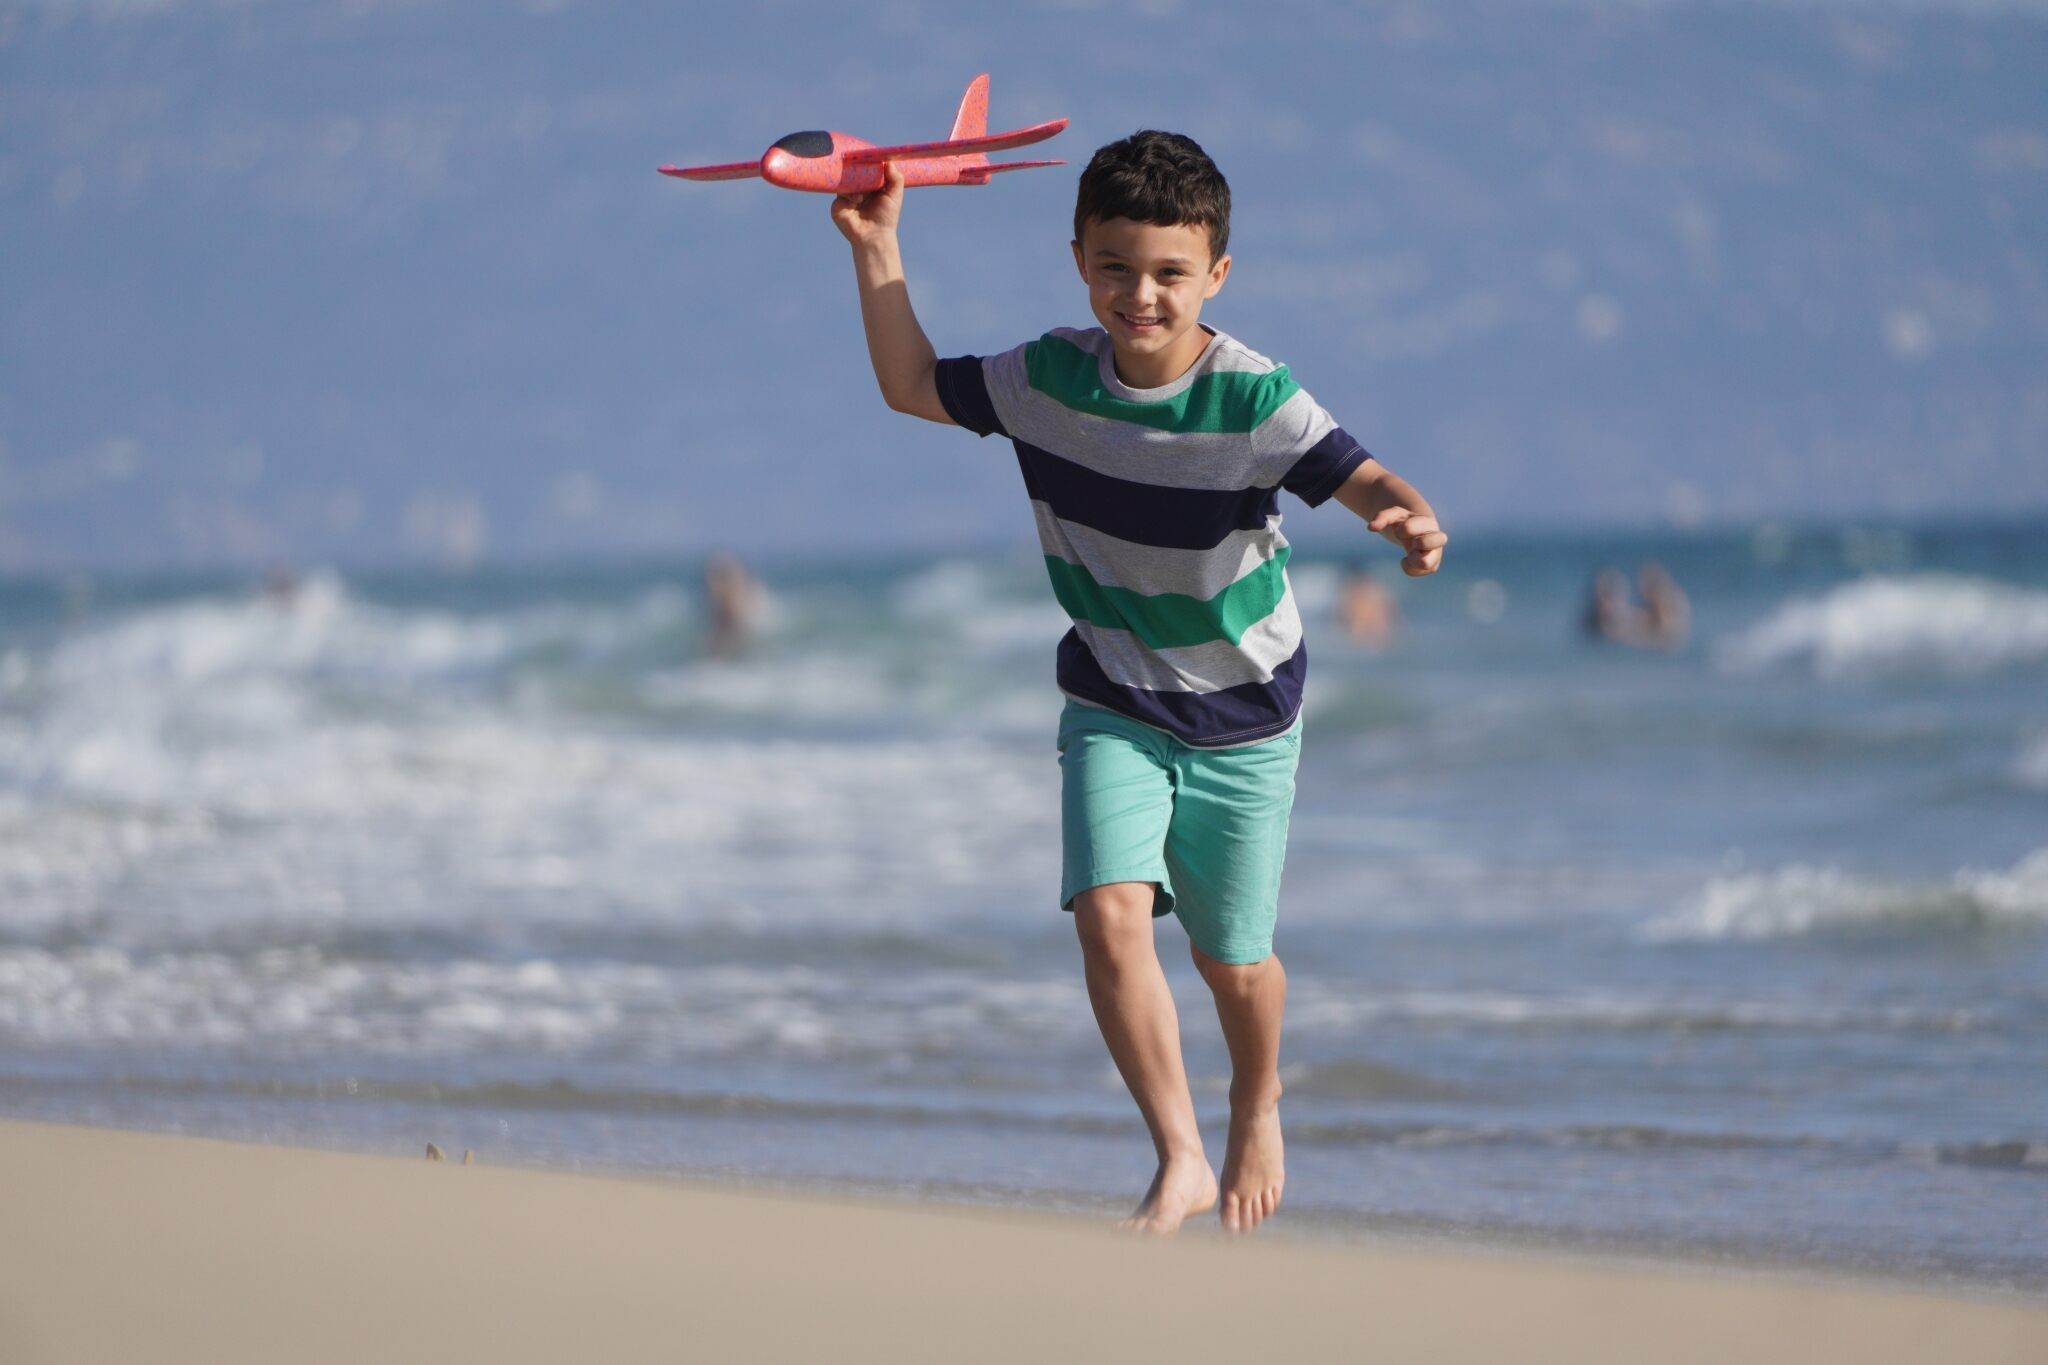 Boy in striped T-shirt running along beach with toy the plane in hand, shot using the Sony E 70- 350mm f4.5-6.3 G OSS Lens